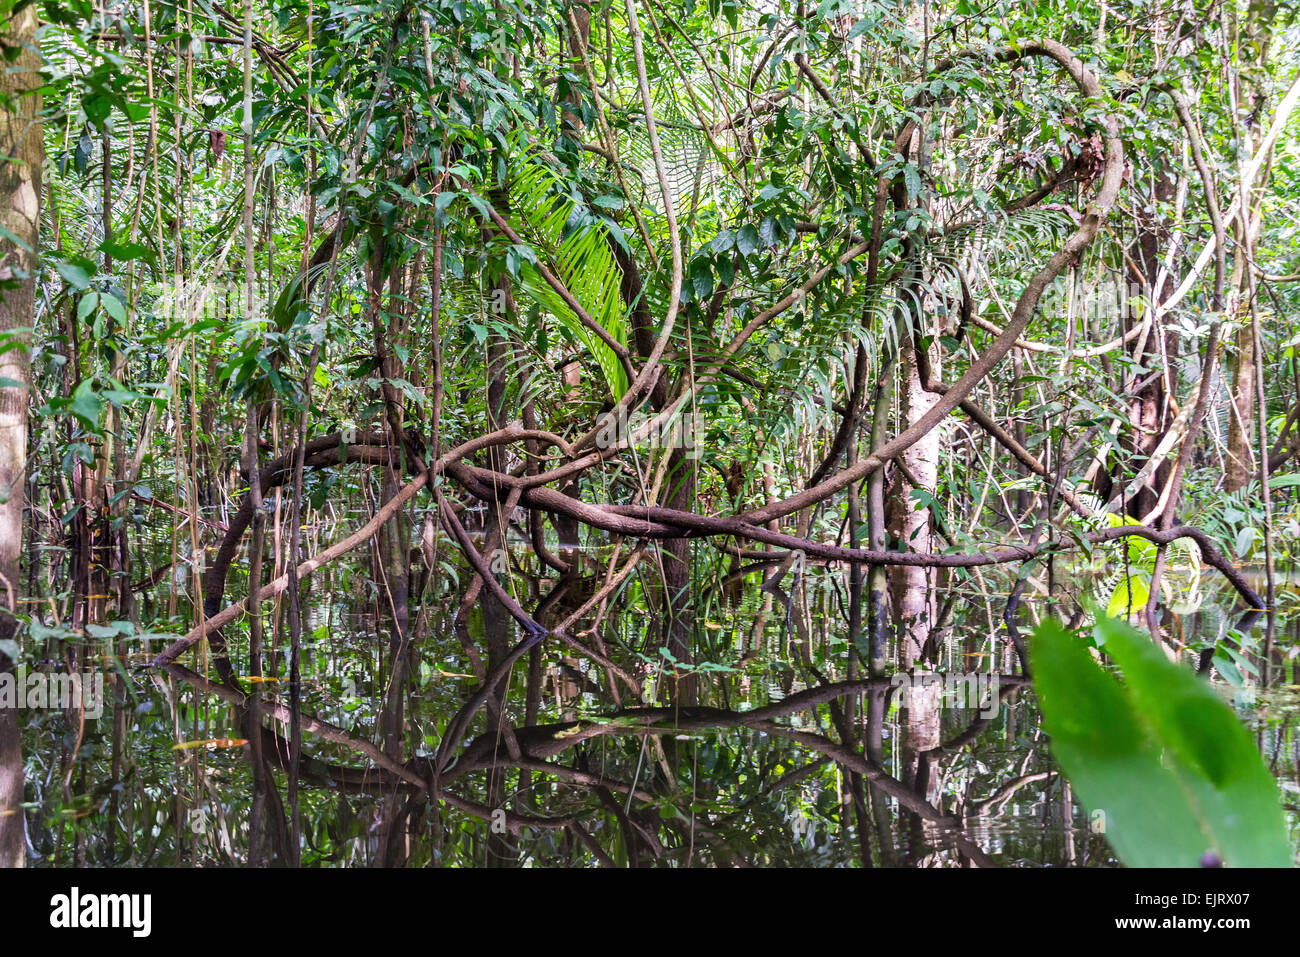 Jungles vines reflected in water in the Amazon rainforest near Iquitos, Peru - Stock Image